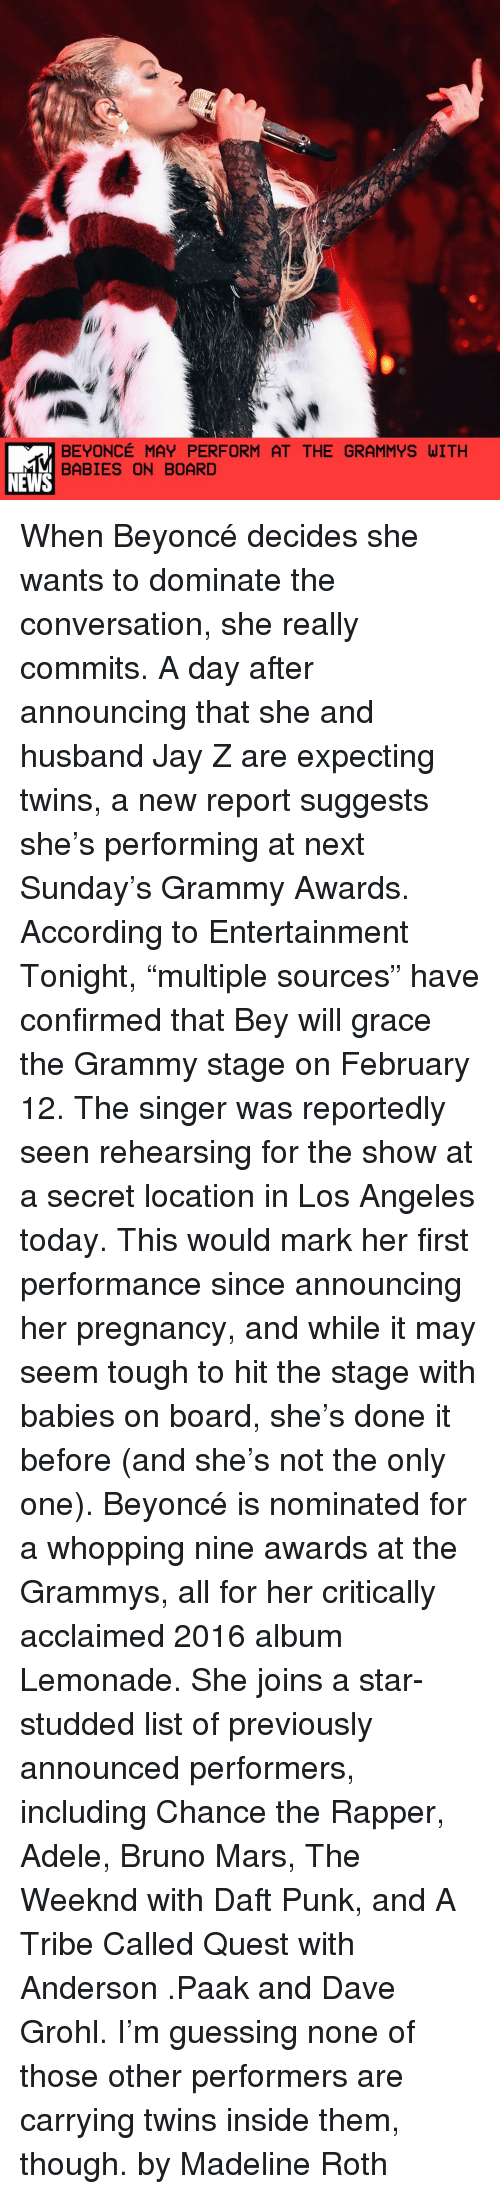 "Bruno Mars, Chance the Rapper, and Dave Grohl: BEYONCE MAY PERFORM AT THE GRAMMYS WITH  BABIES ON BOARD  NEWS When Beyoncé decides she wants to dominate the conversation, she really commits. A day after announcing that she and husband Jay Z are expecting twins, a new report suggests she's performing at next Sunday's Grammy Awards. According to Entertainment Tonight, ""multiple sources"" have confirmed that Bey will grace the Grammy stage on February 12. The singer was reportedly seen rehearsing for the show at a secret location in Los Angeles today. This would mark her first performance since announcing her pregnancy, and while it may seem tough to hit the stage with babies on board, she's done it before (and she's not the only one). Beyoncé is nominated for a whopping nine awards at the Grammys, all for her critically acclaimed 2016 album Lemonade. She joins a star-studded list of previously announced performers, including Chance the Rapper, Adele, Bruno Mars, The Weeknd with Daft Punk, and A Tribe Called Quest with Anderson .Paak and Dave Grohl. I'm guessing none of those other performers are carrying twins inside them, though. by Madeline Roth"